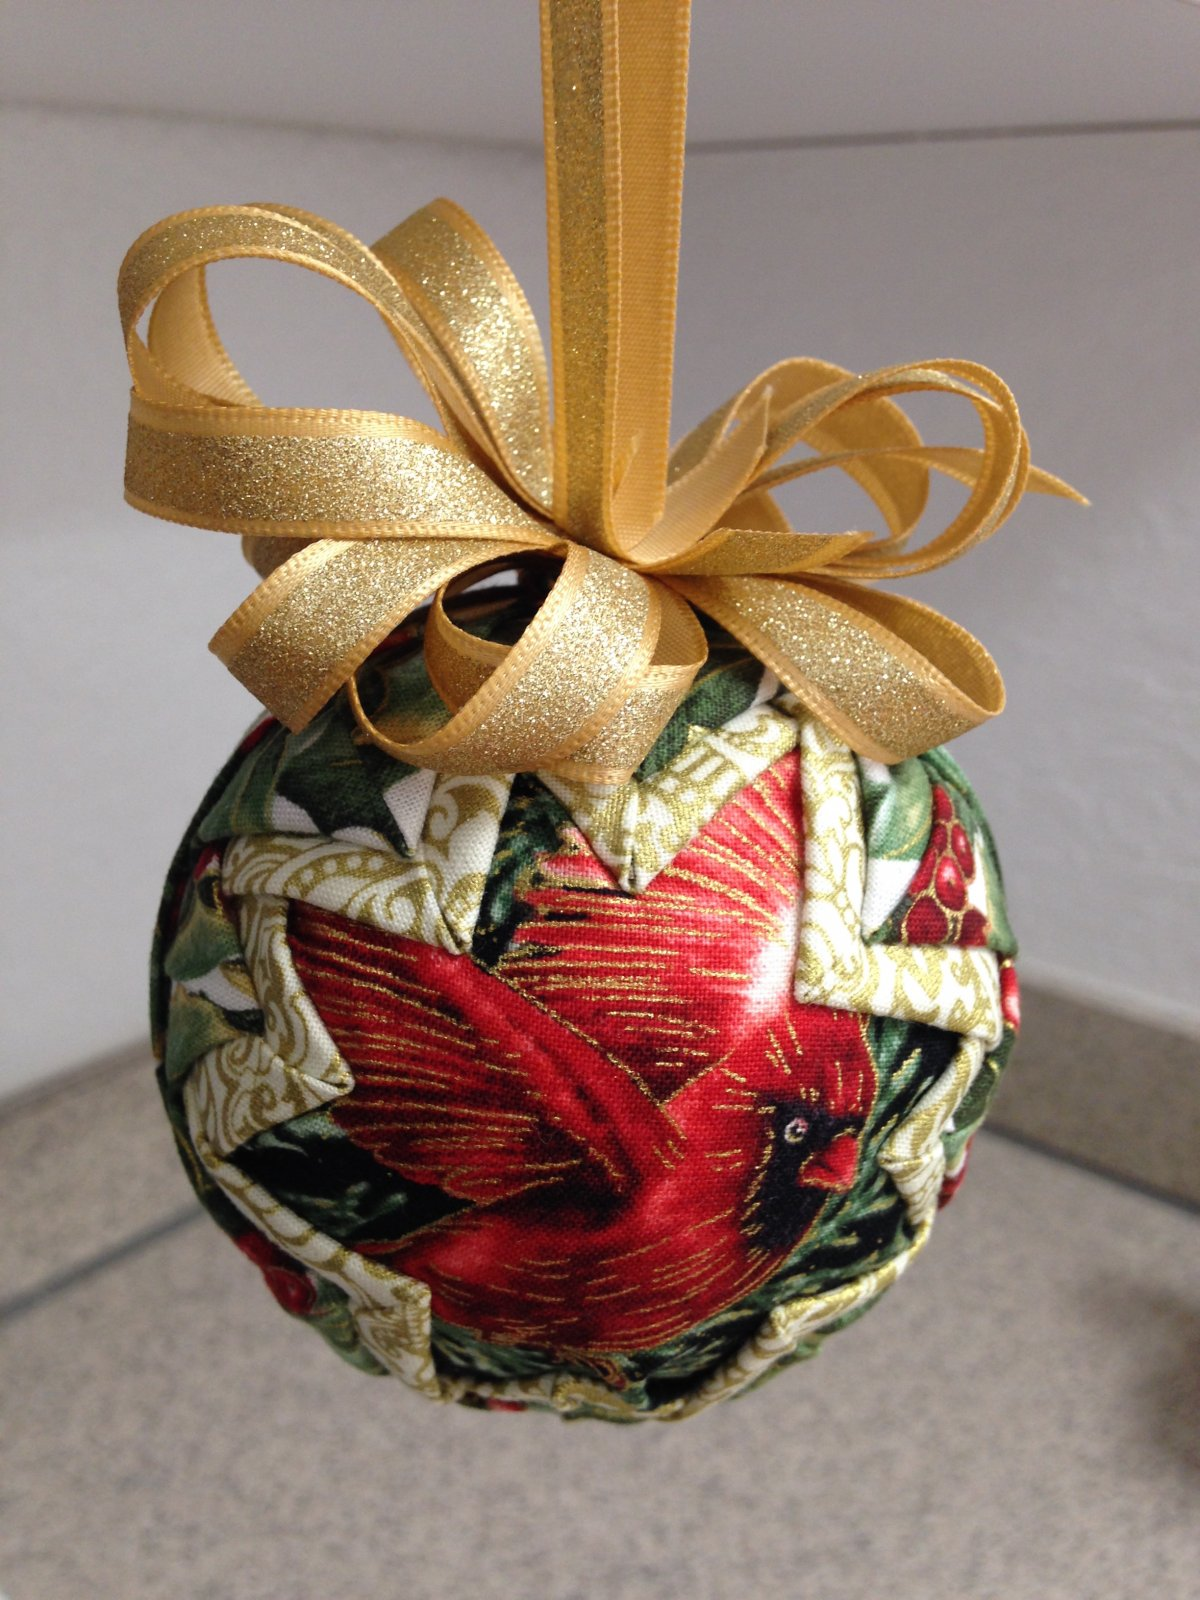 No-Sew Holiday Ornament